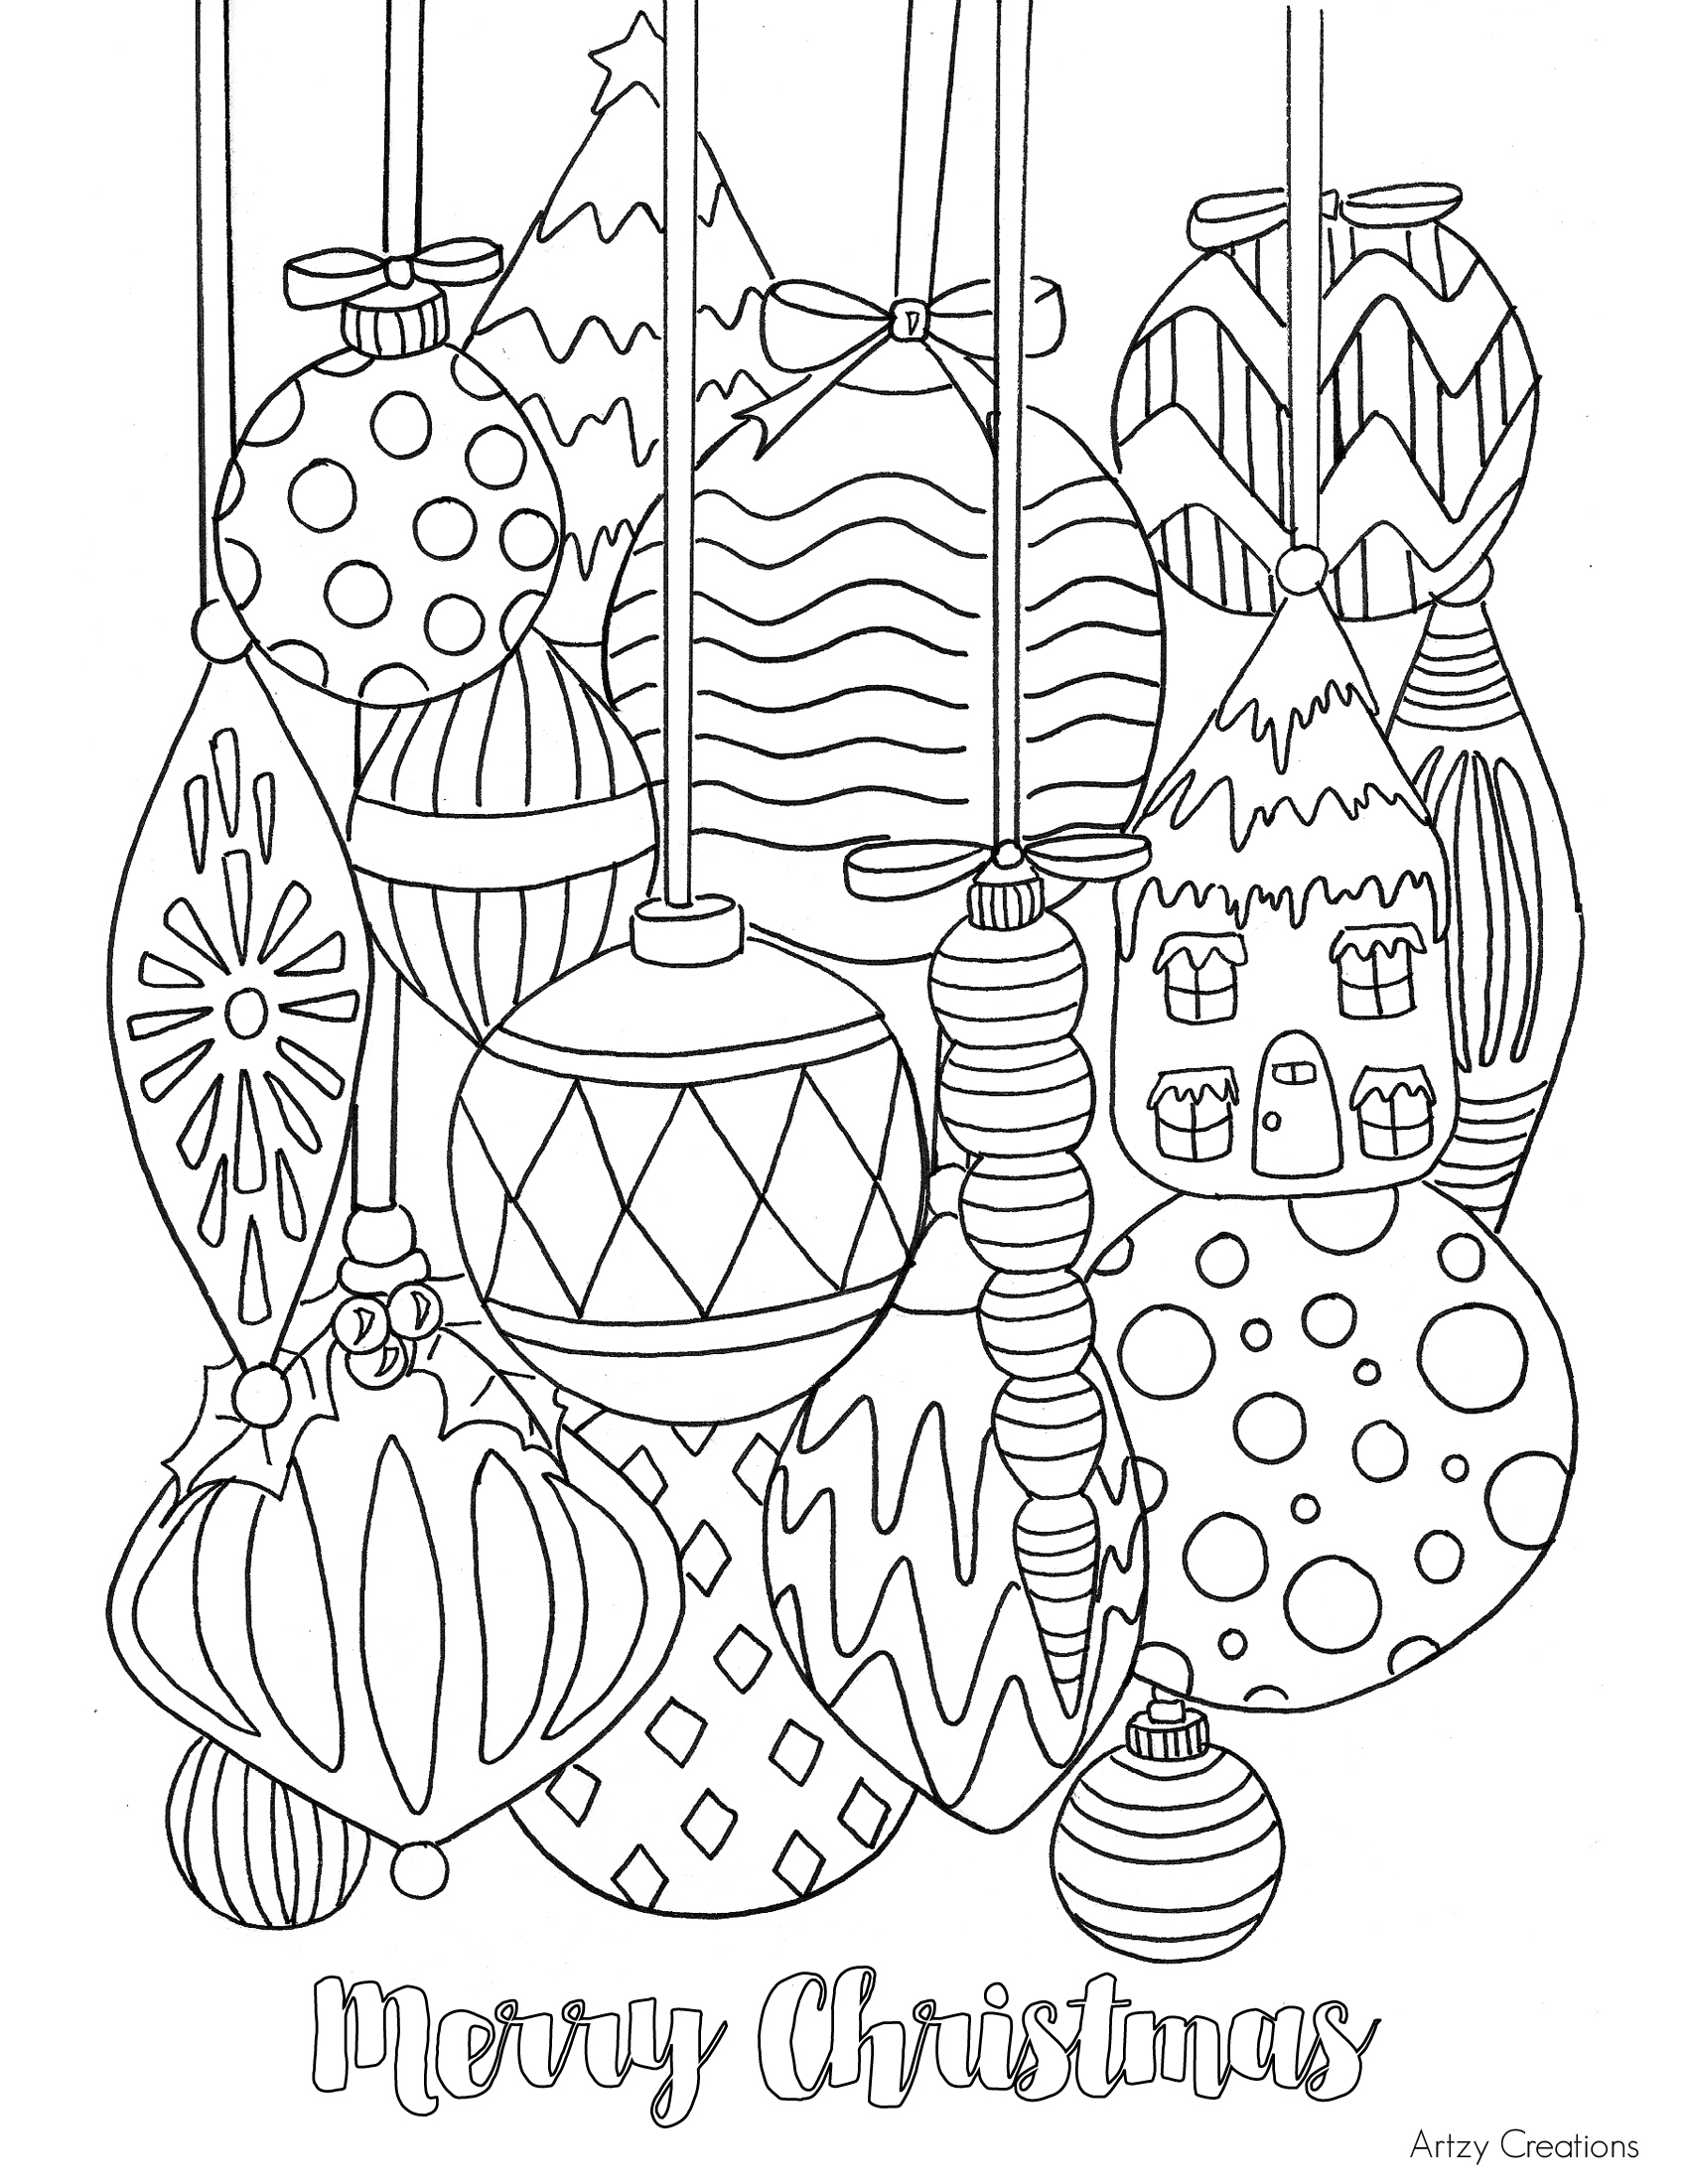 Coloring Pages For Merry Christmas With Fresh Free Printable